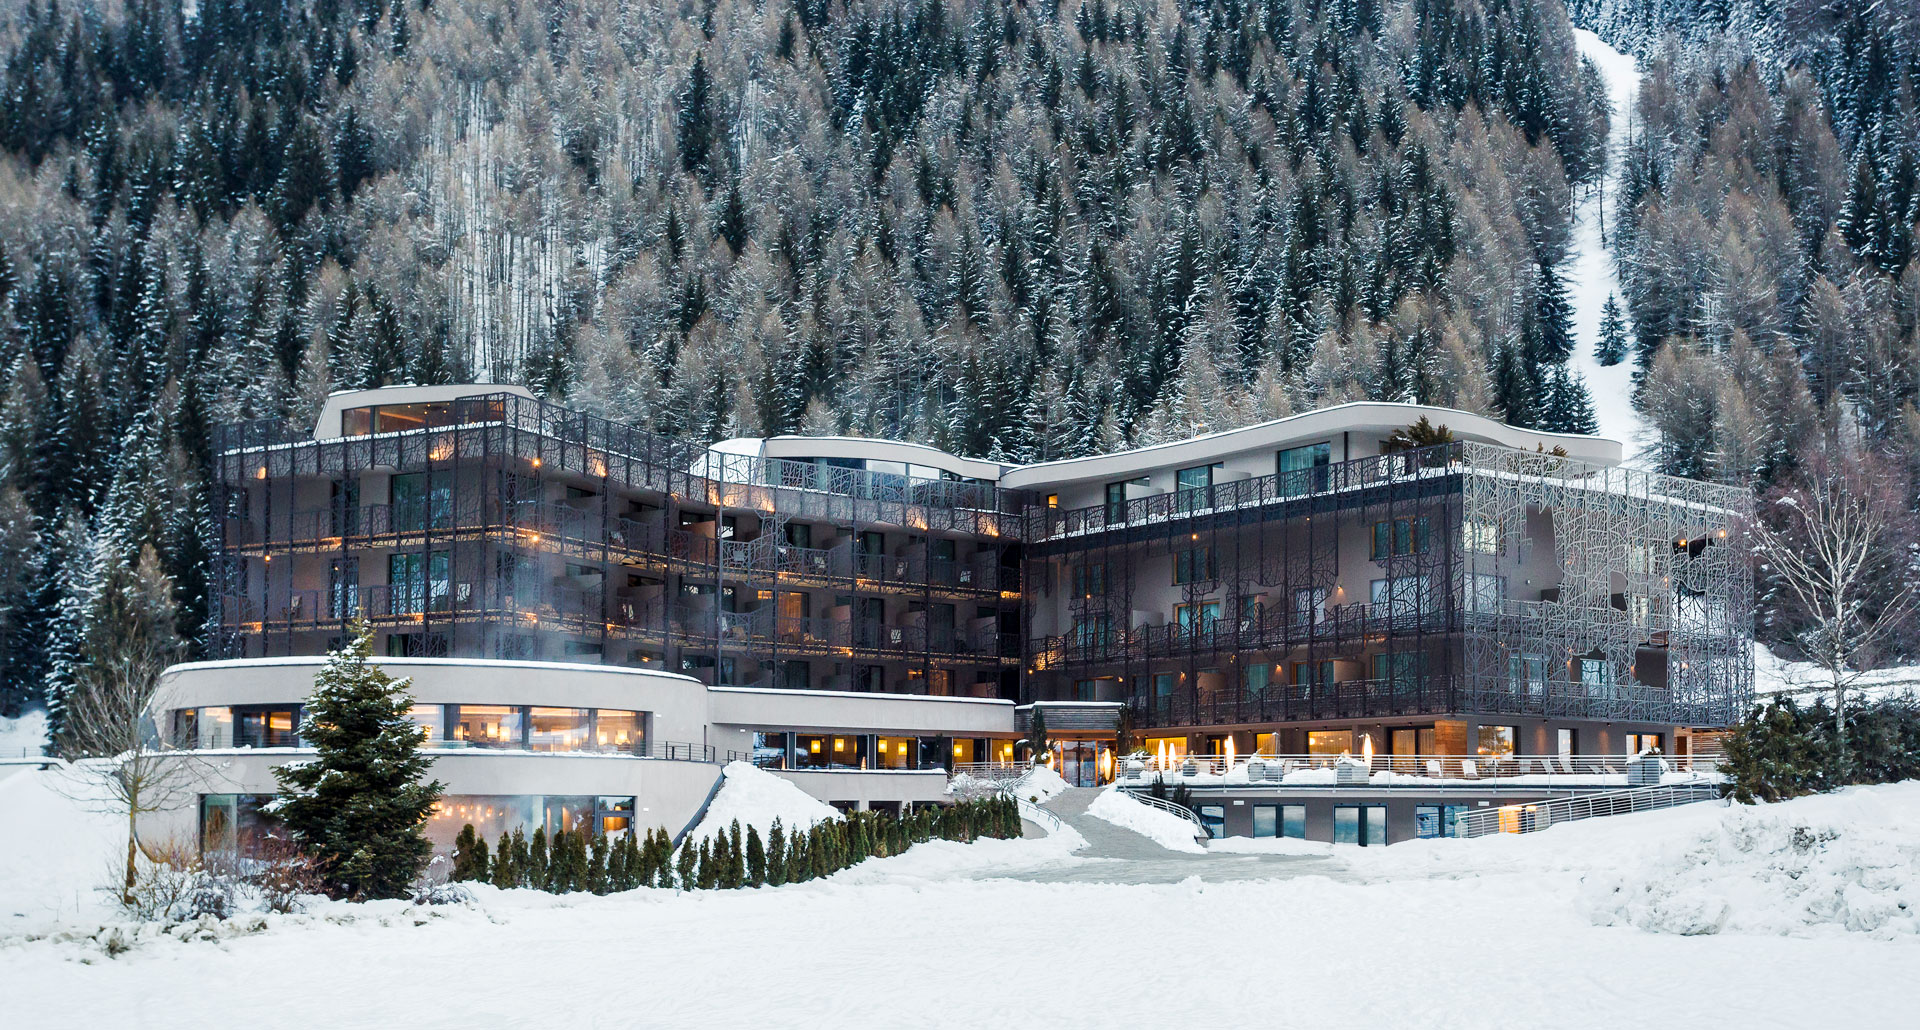 Silena, the Soulful Hotel - boutique hotel in South Tyrol